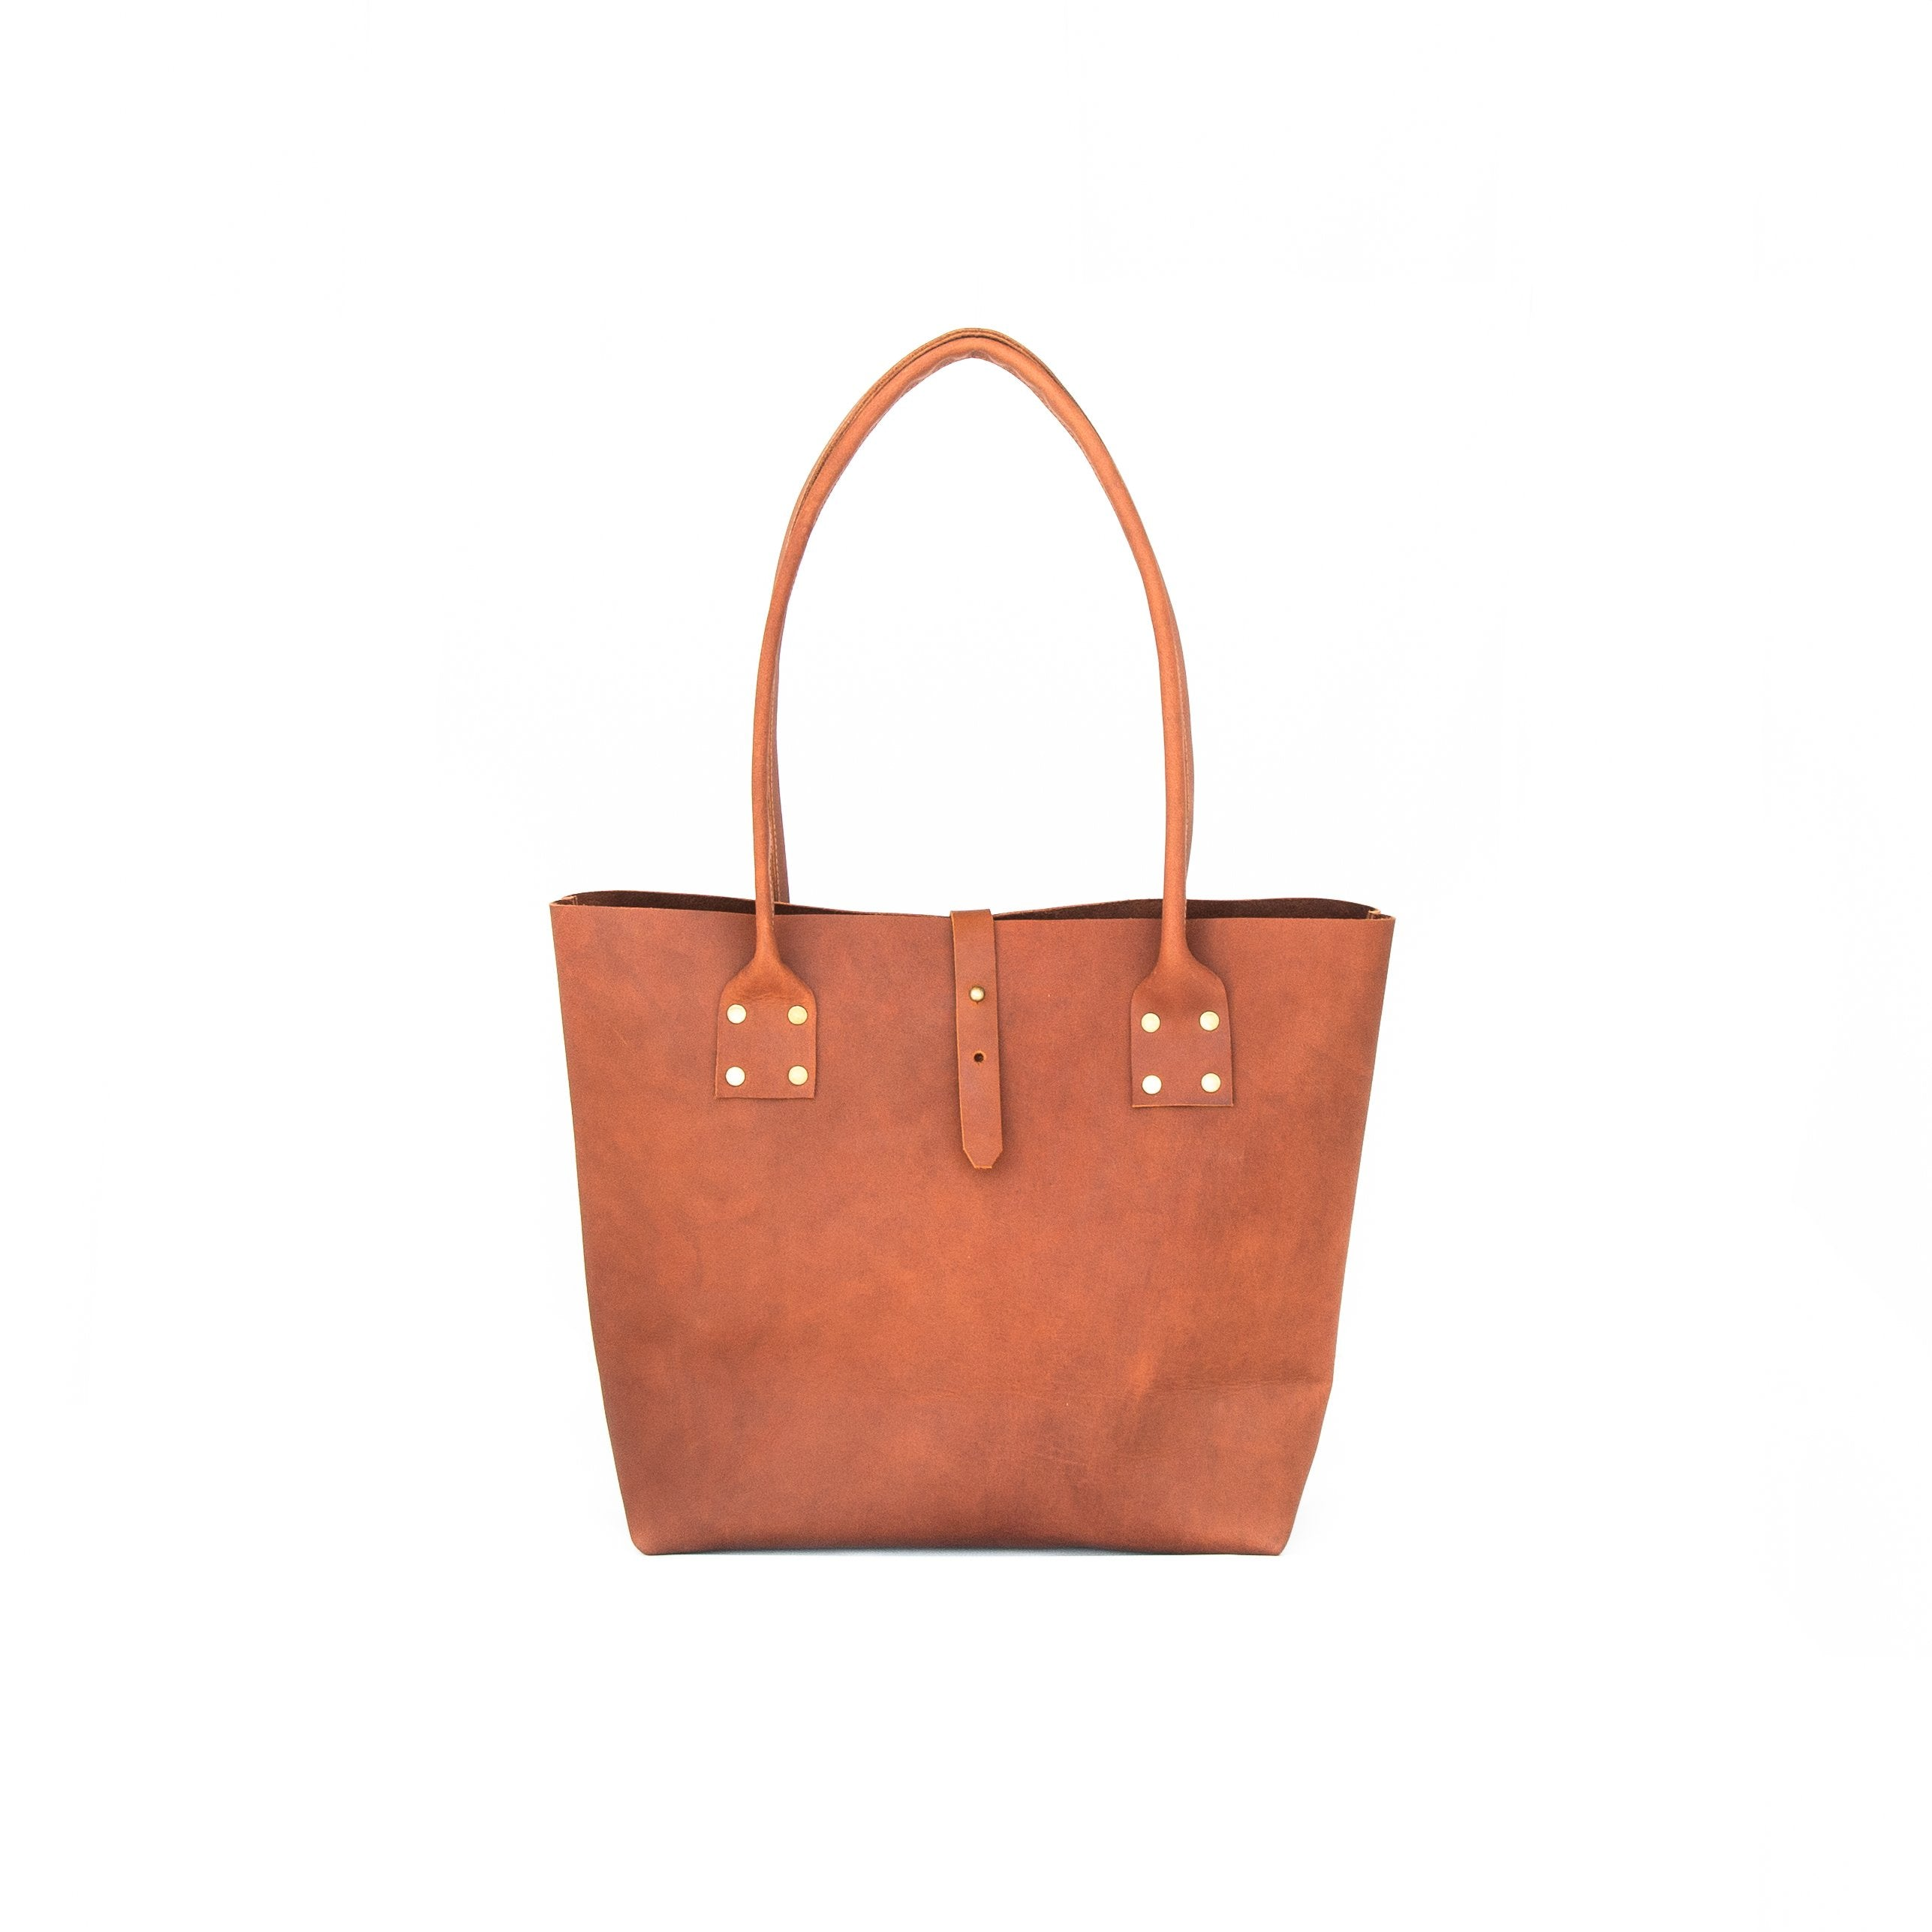 Refined Tote Leather - handcrafted by Market Canvas Leather in Tofino, BC, Canada